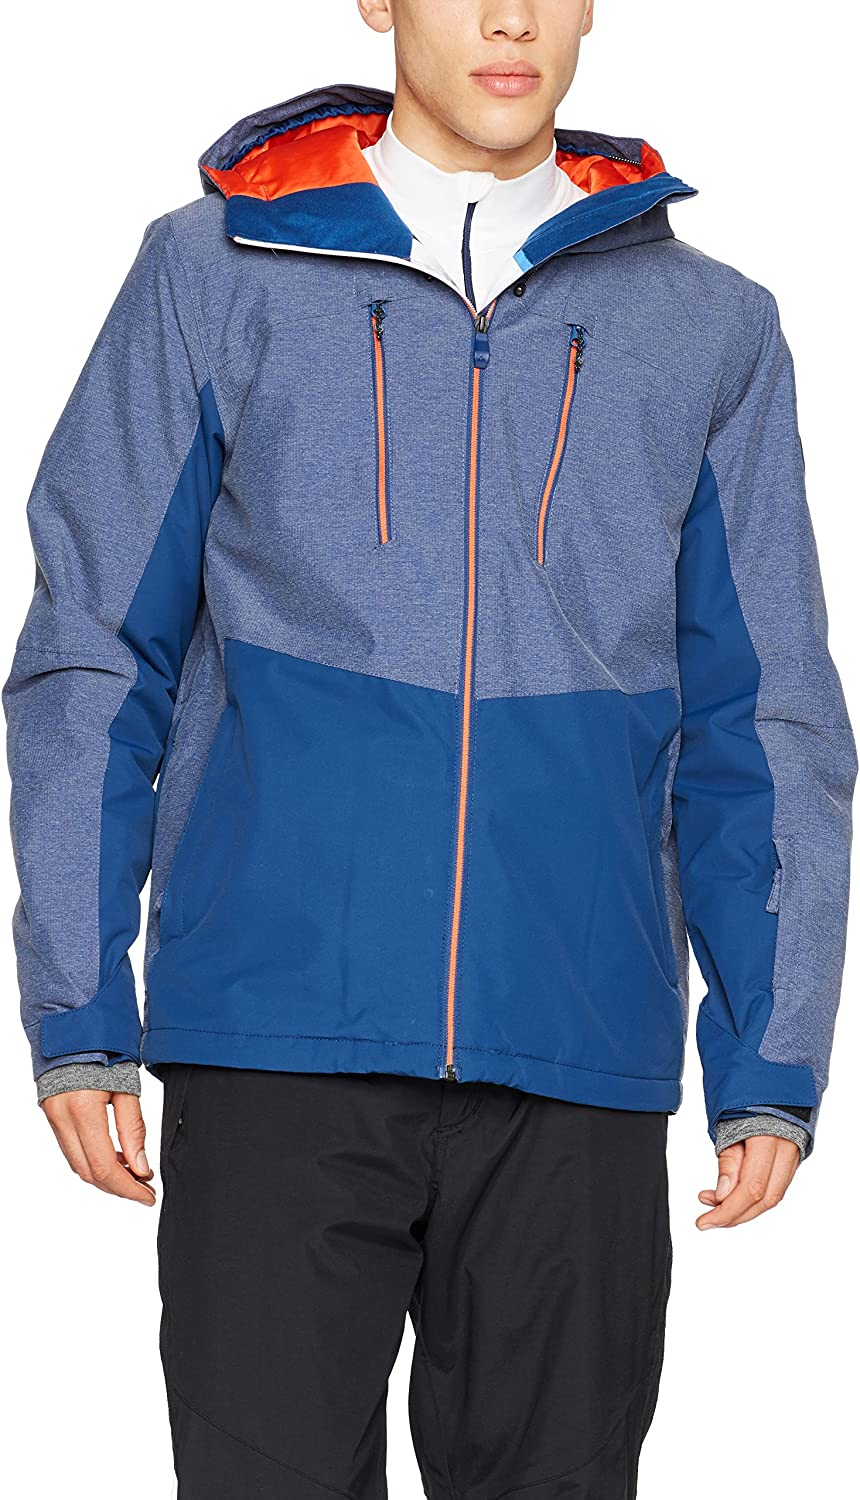 Quiksilver Men's Mission Plus Snow Jacket